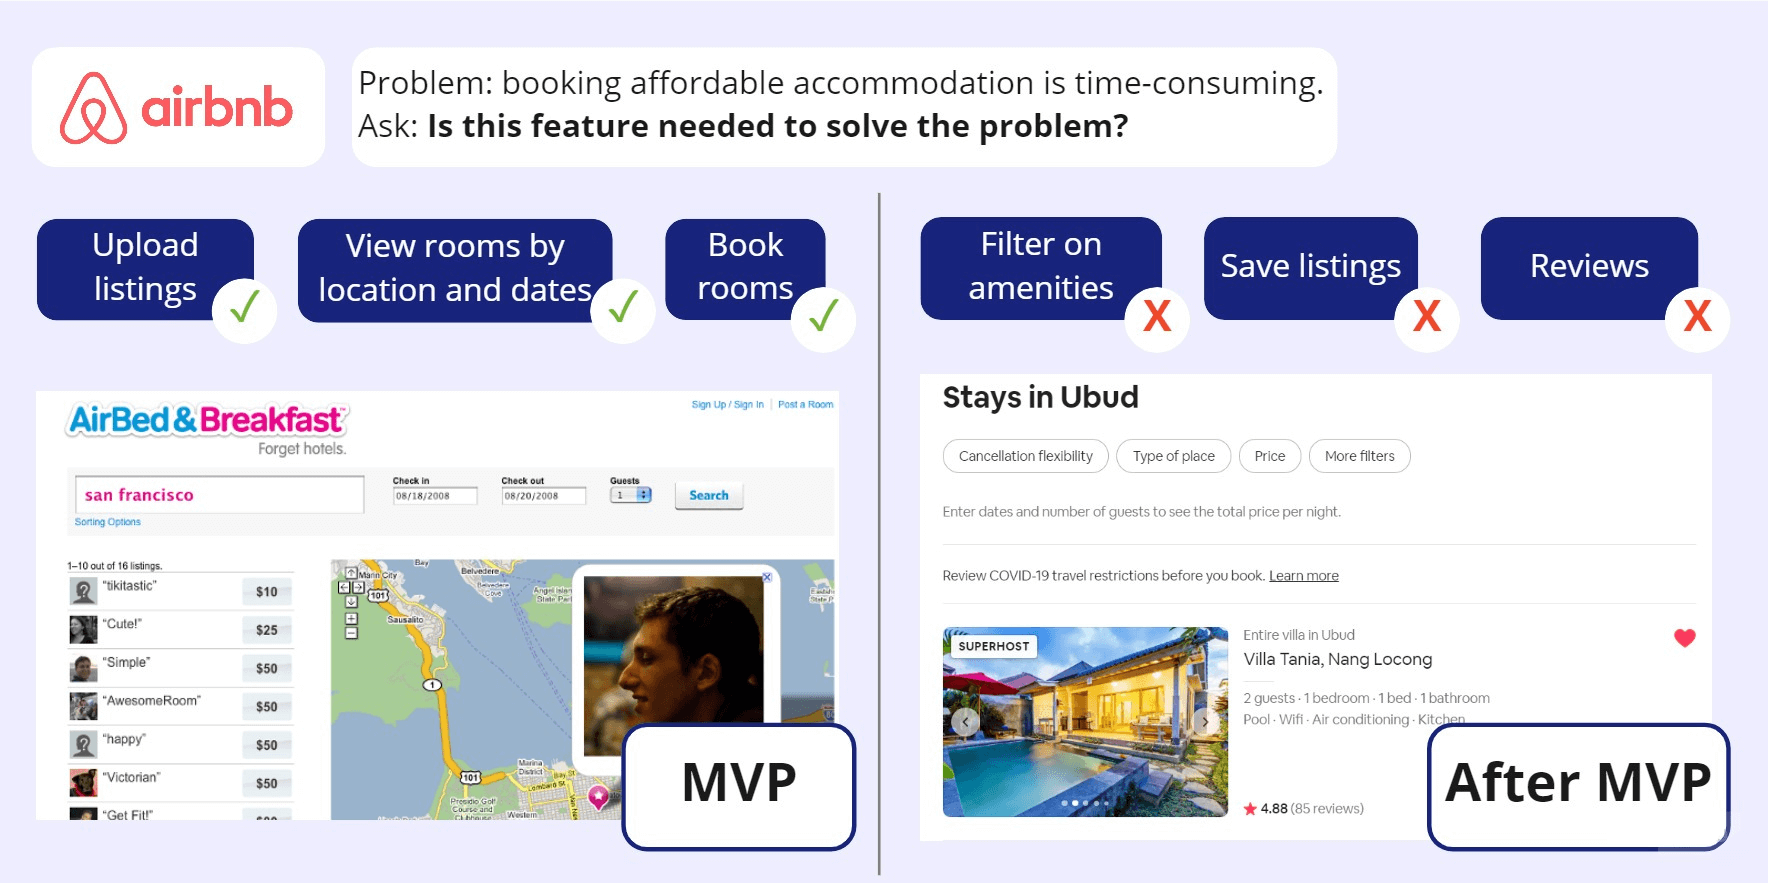 Airbnb's MVP only let users upload listings, view rooms and book rooms. Nice to have's like filtering and reviews came later.